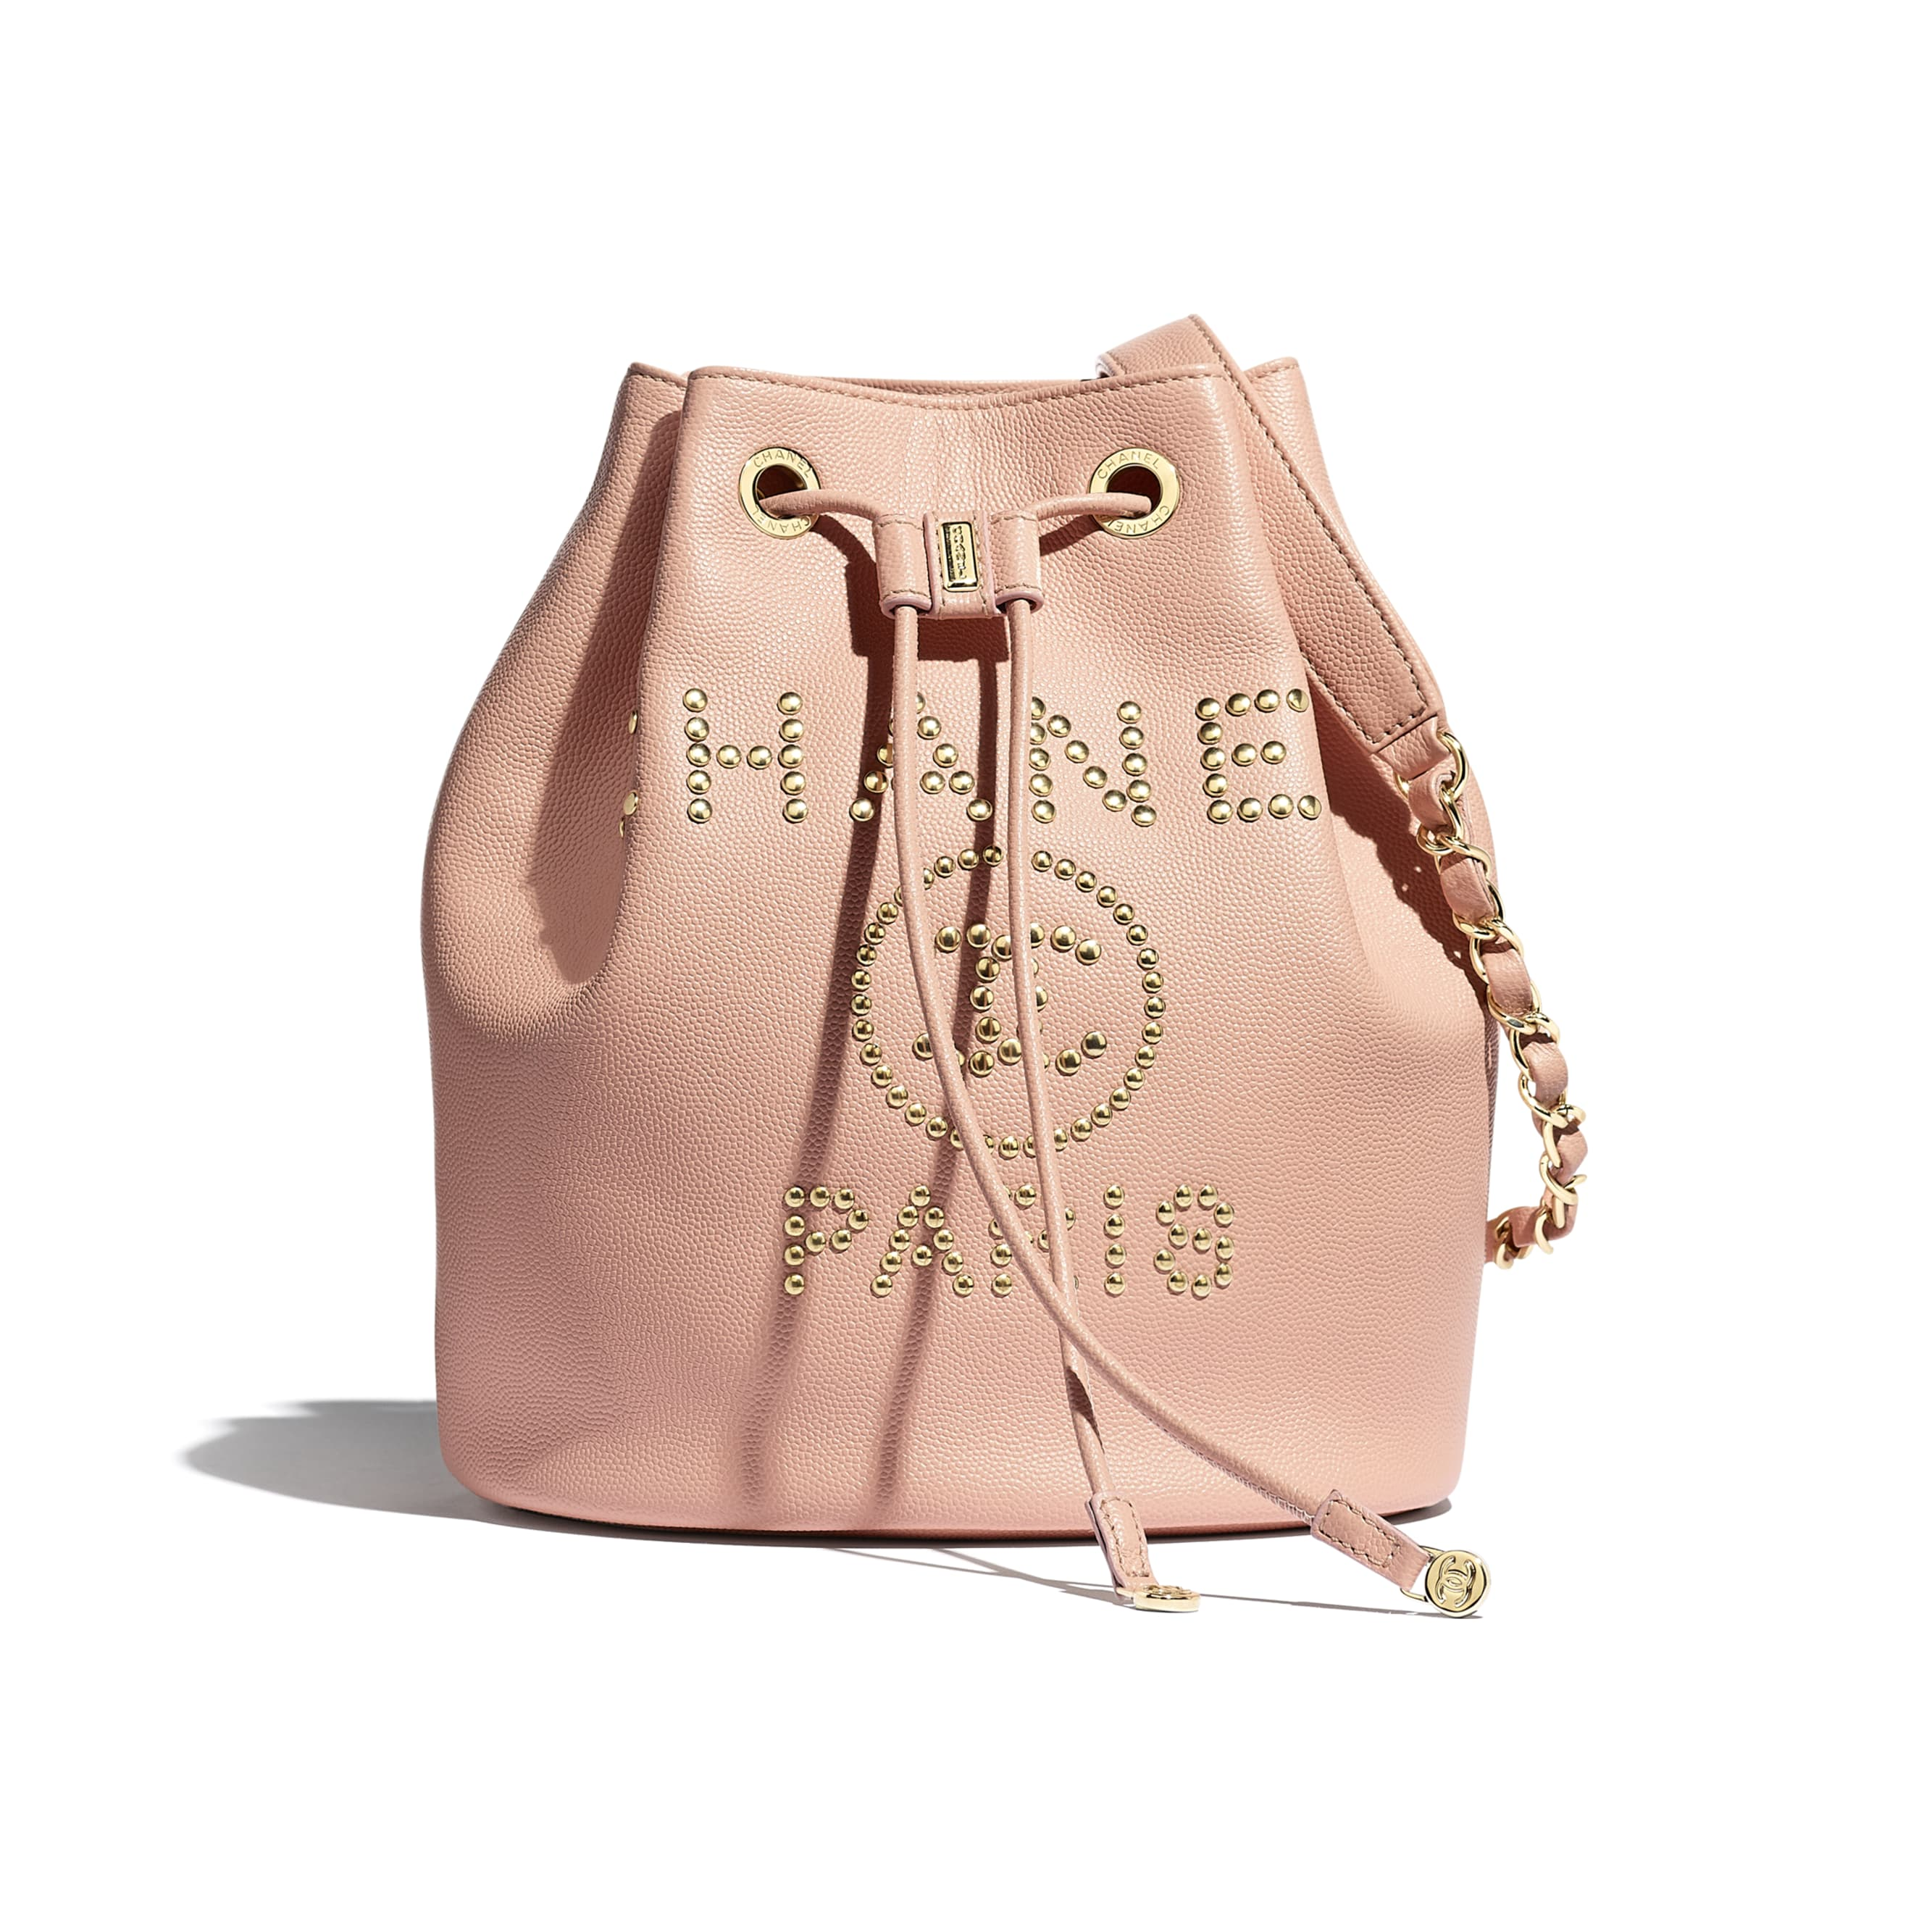 Small Drawstring Bag - Light Pink - Grained Calfskin, Studs & Gold-Tone Metal - Default view - see standard sized version